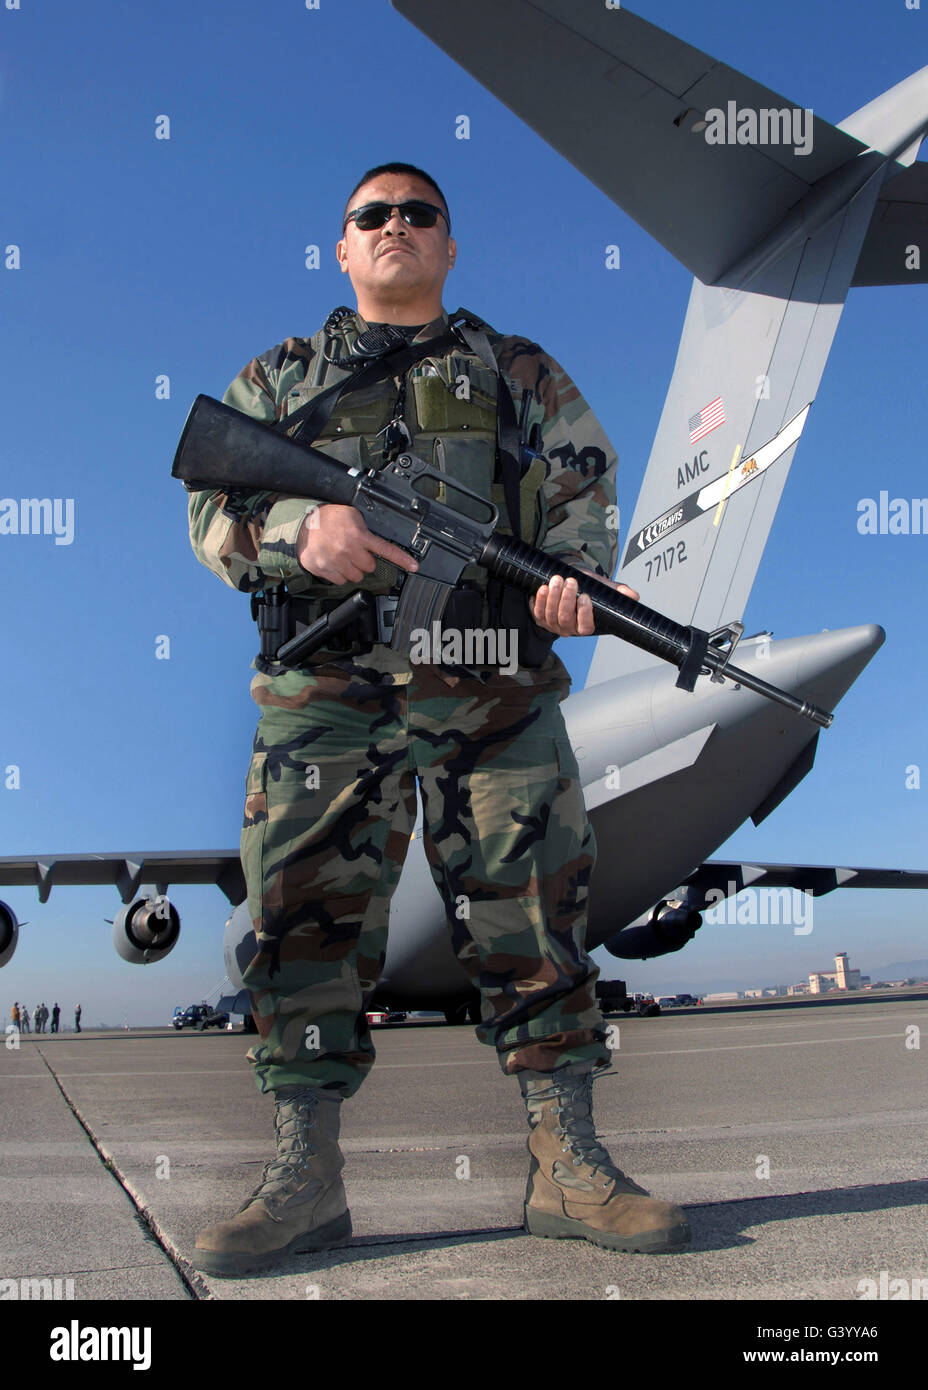 A soldier scans stands guard close to the secured perimeter of a C-17 Globemaster III. - Stock Image